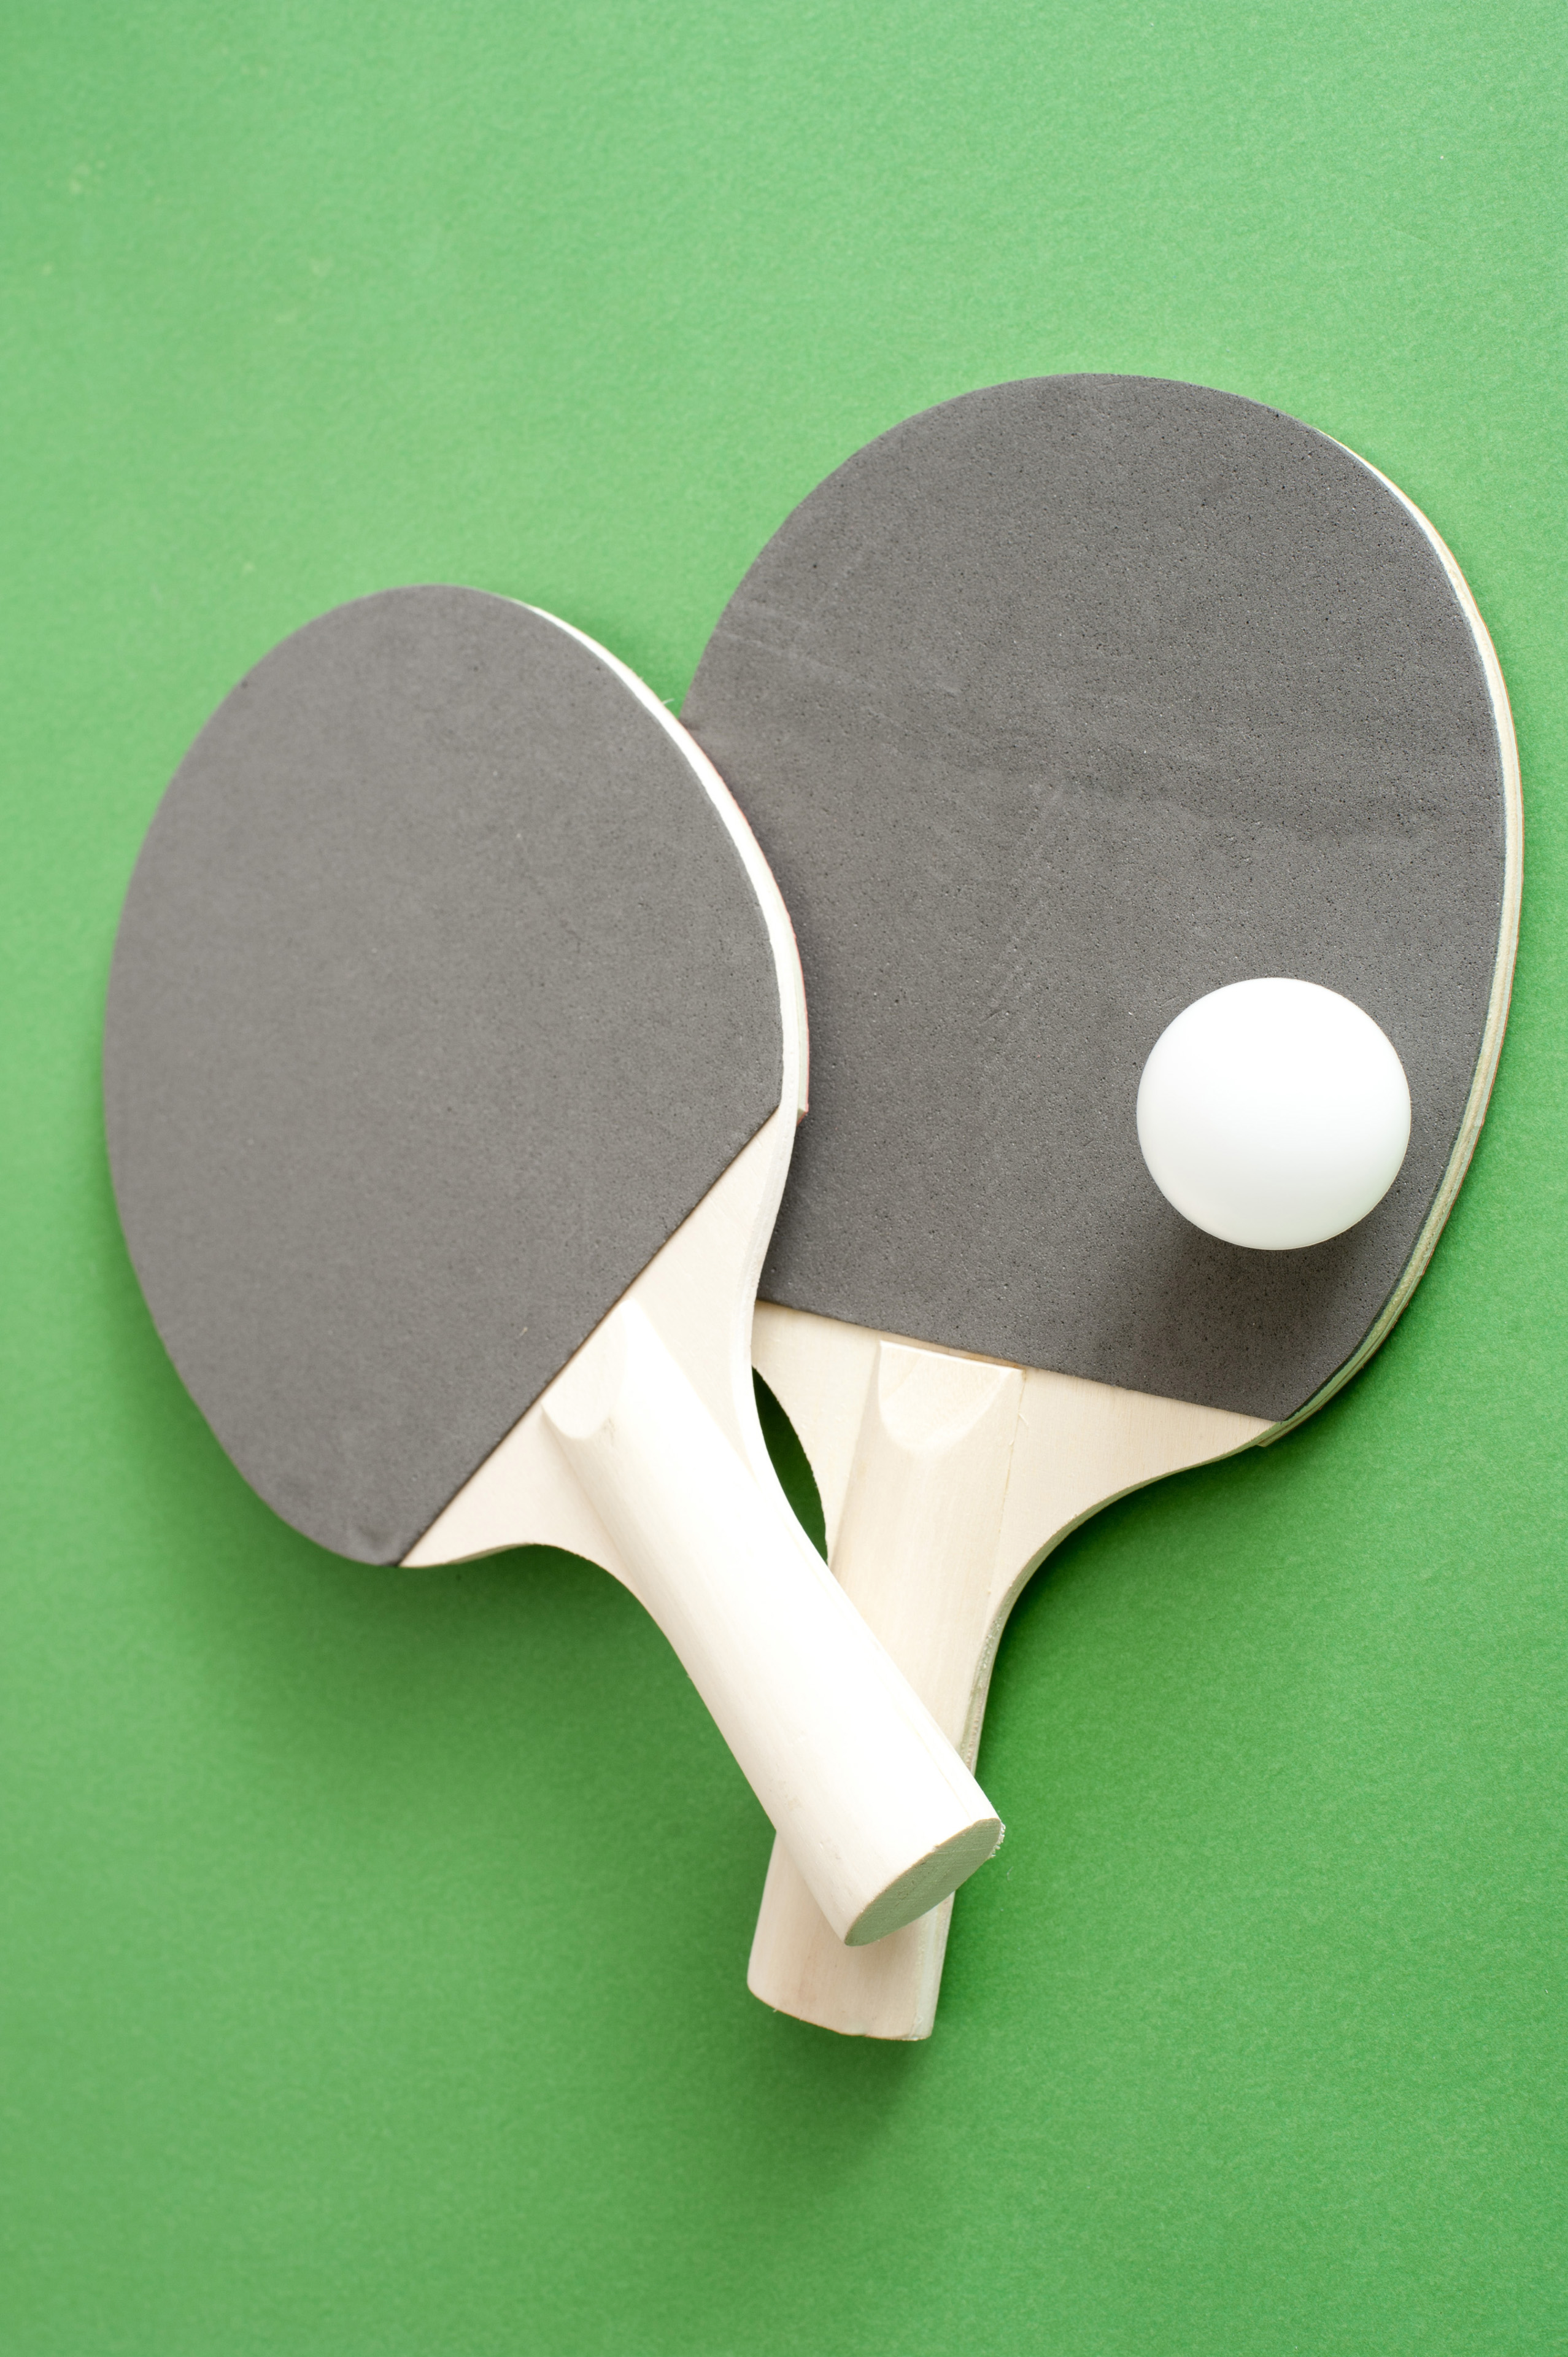 Table tennis bats and a ball lying on the green wooden table read for a game of indoor ping pong or table tennis